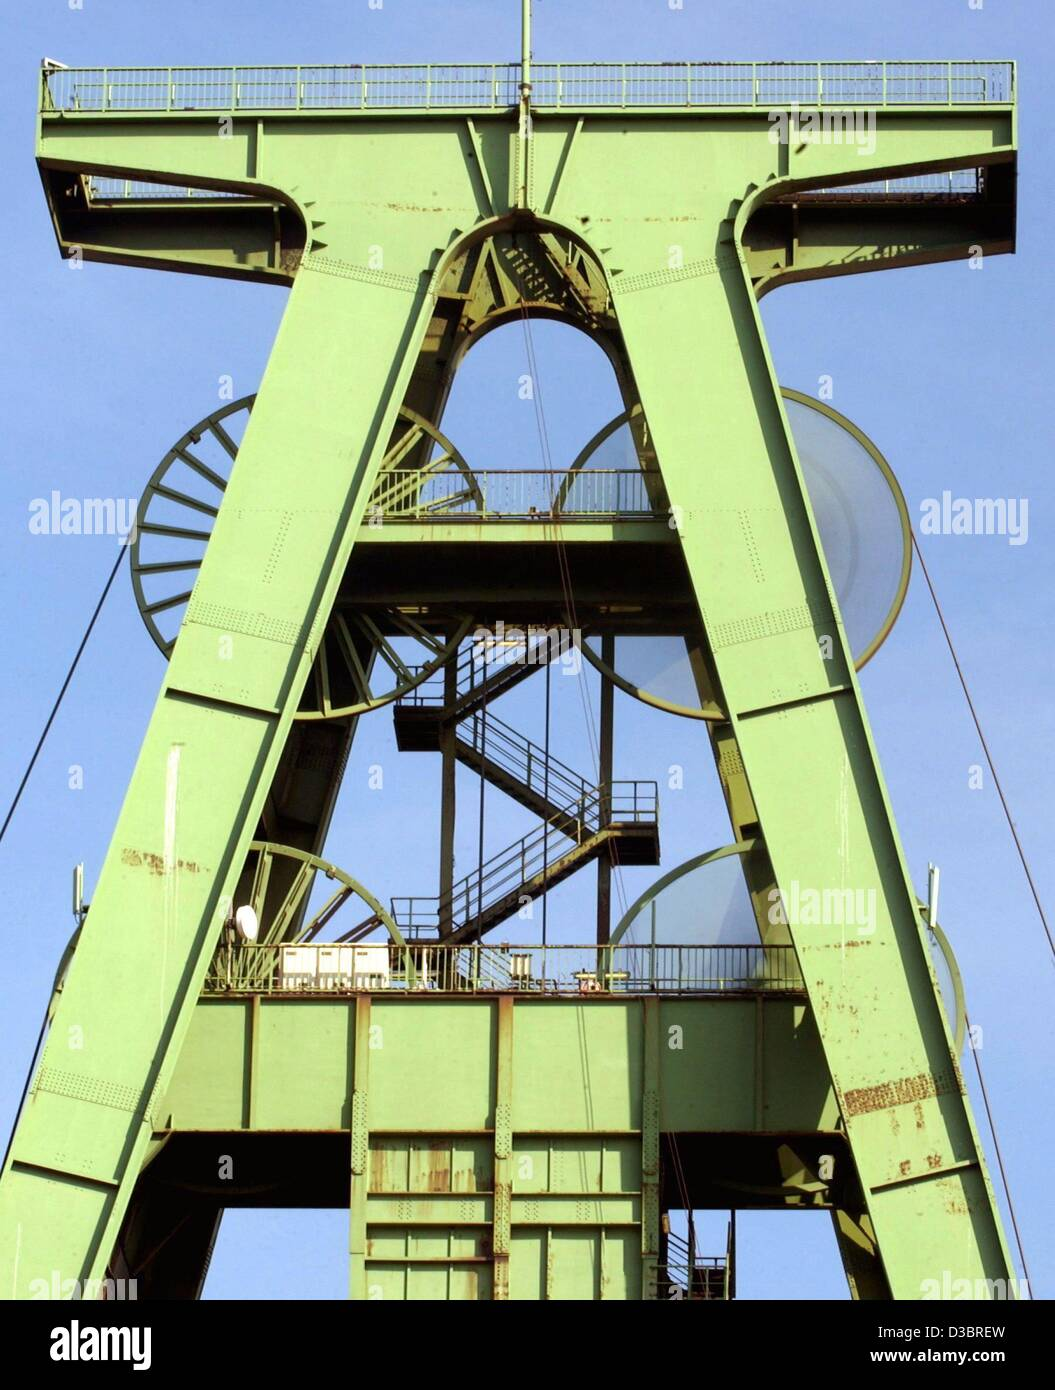 (dpa) - Two of the four wheels on the winding tower continue to spin around while the other pair stand still at Stock Photo